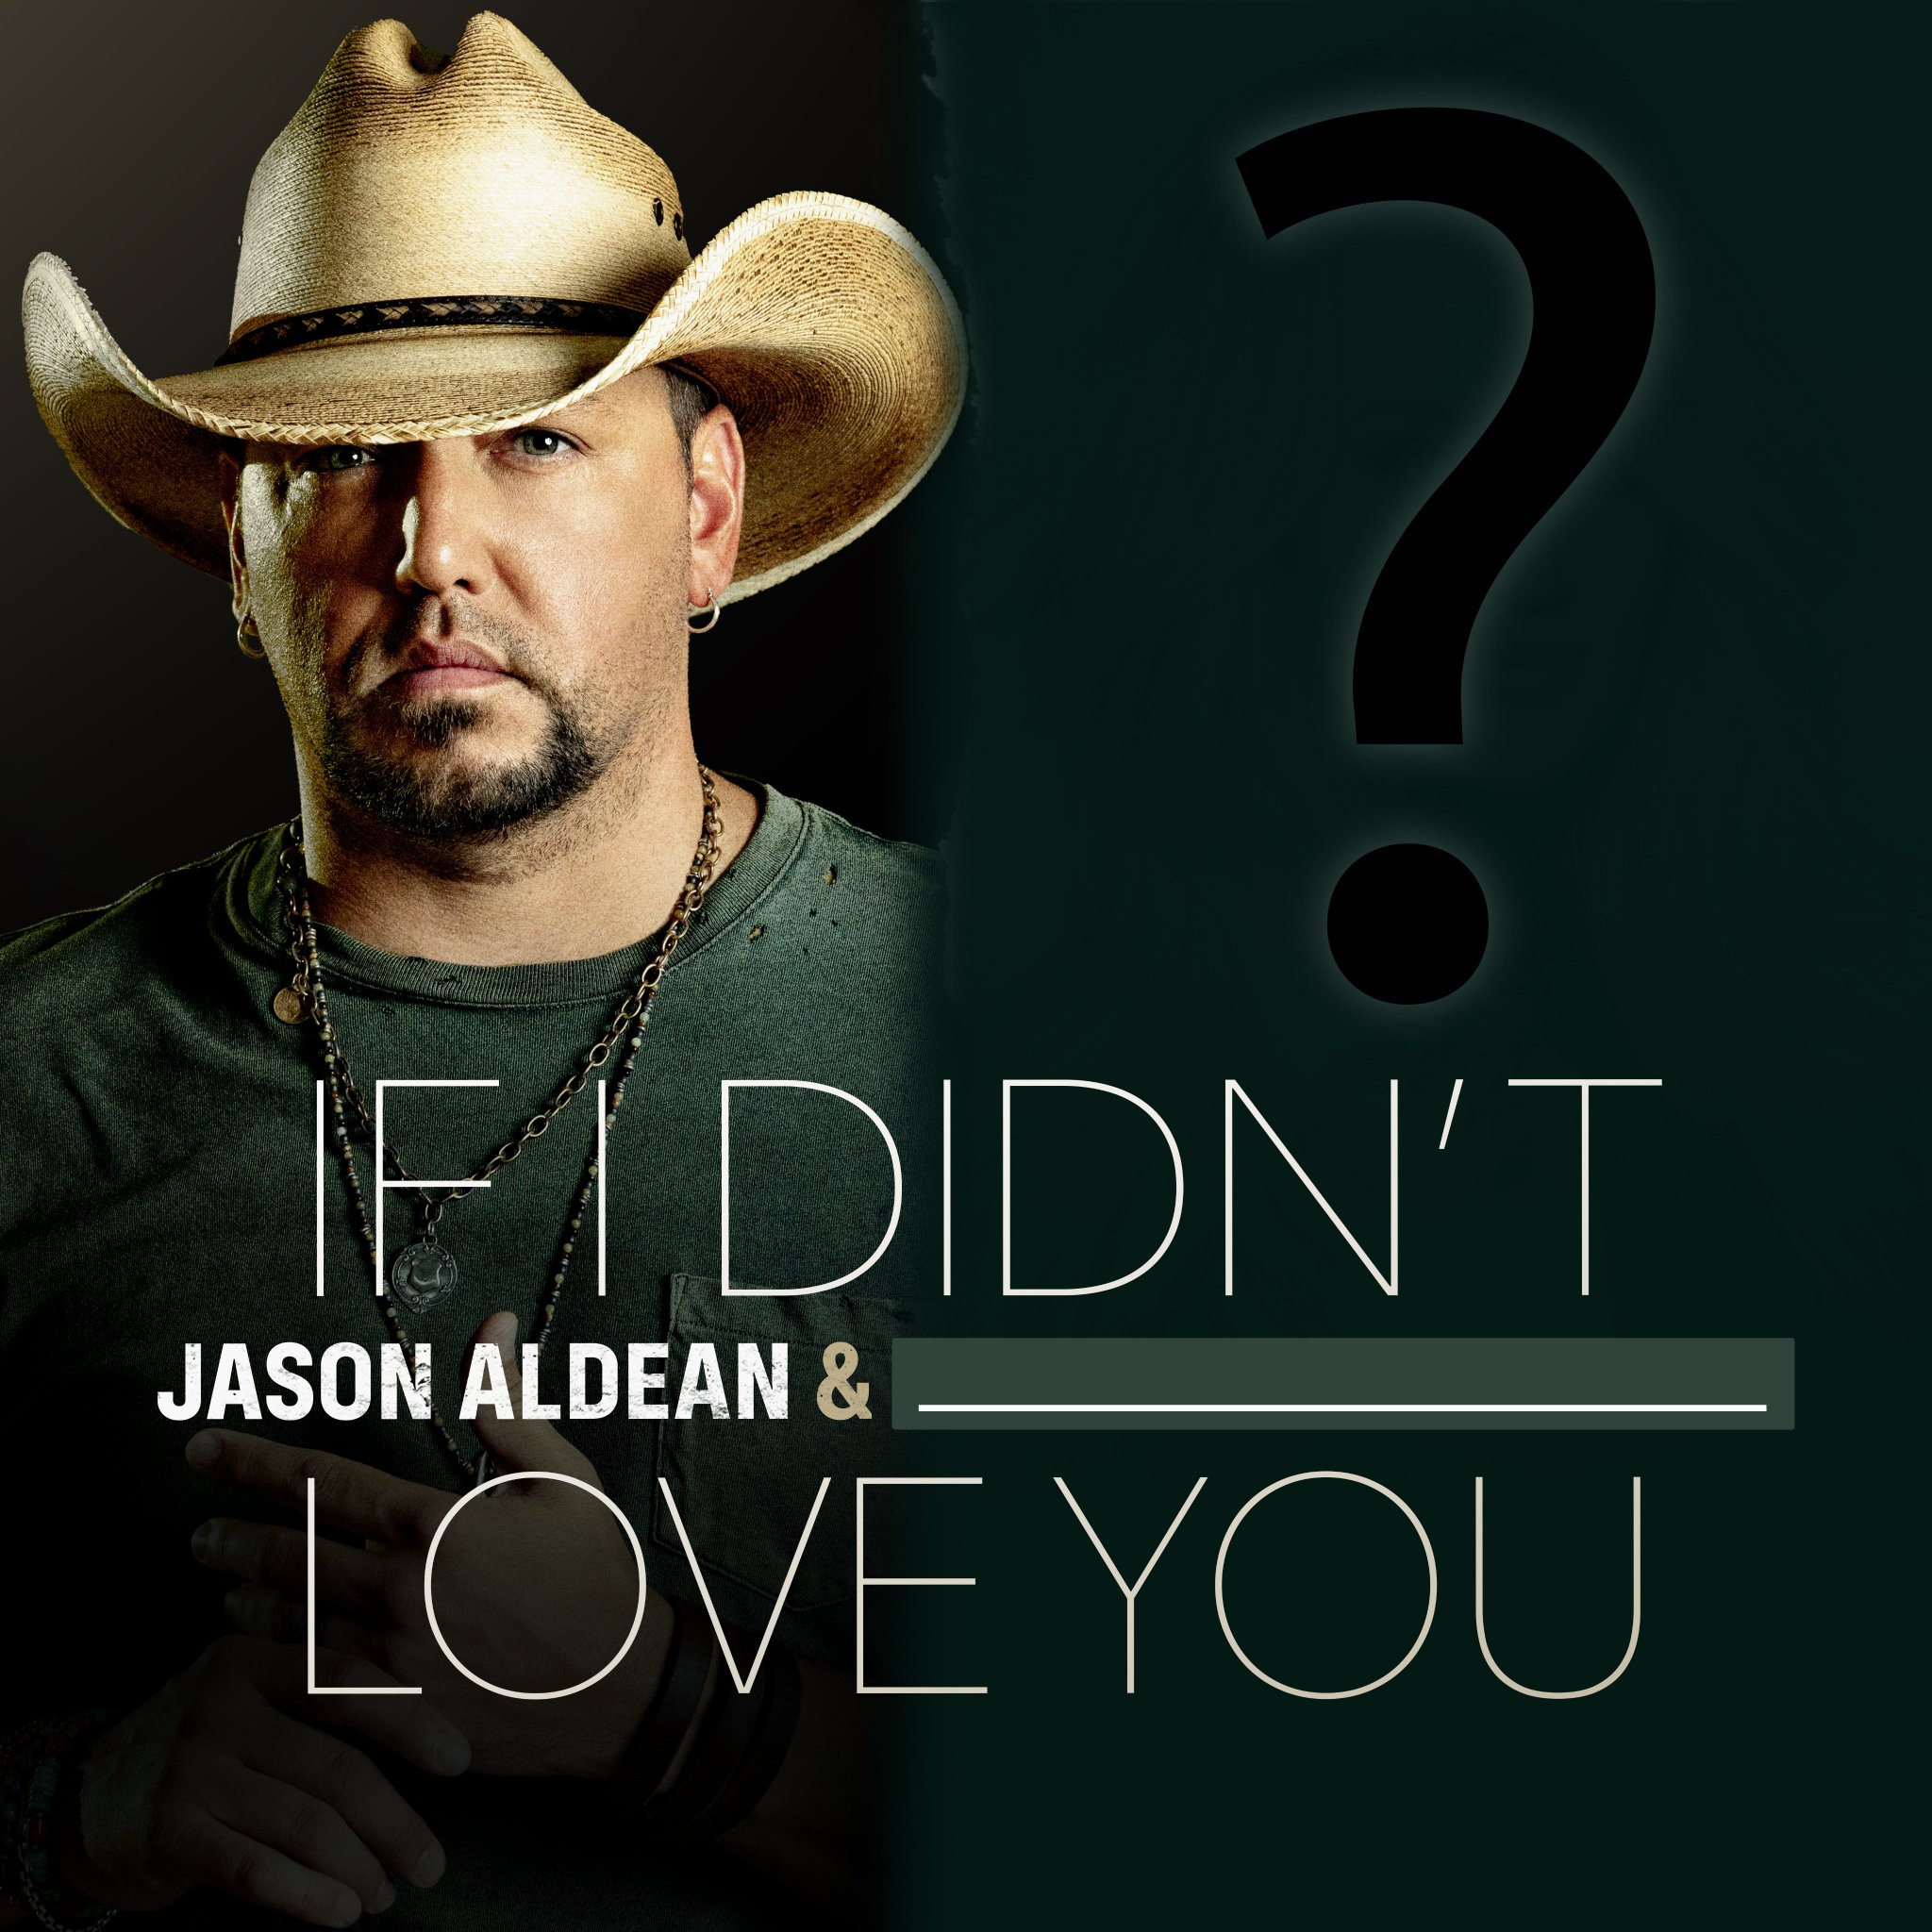 Carrie Underwood Responds to Rumors About Collaboration with Jason Aldean